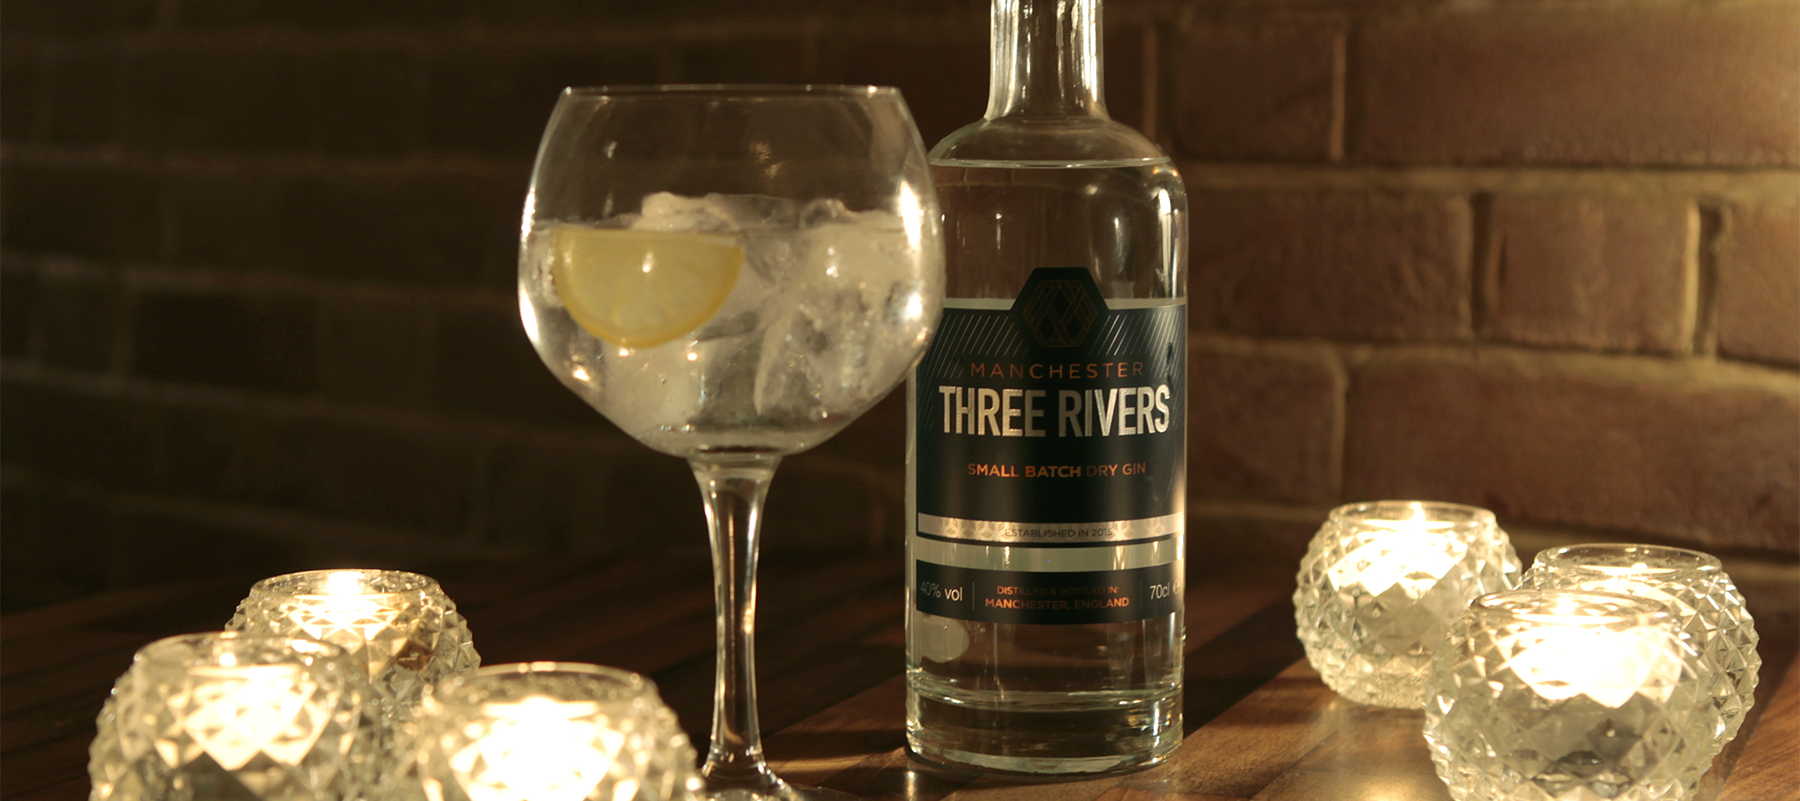 Manchester Three Rivers Dry Gin: 40% abv